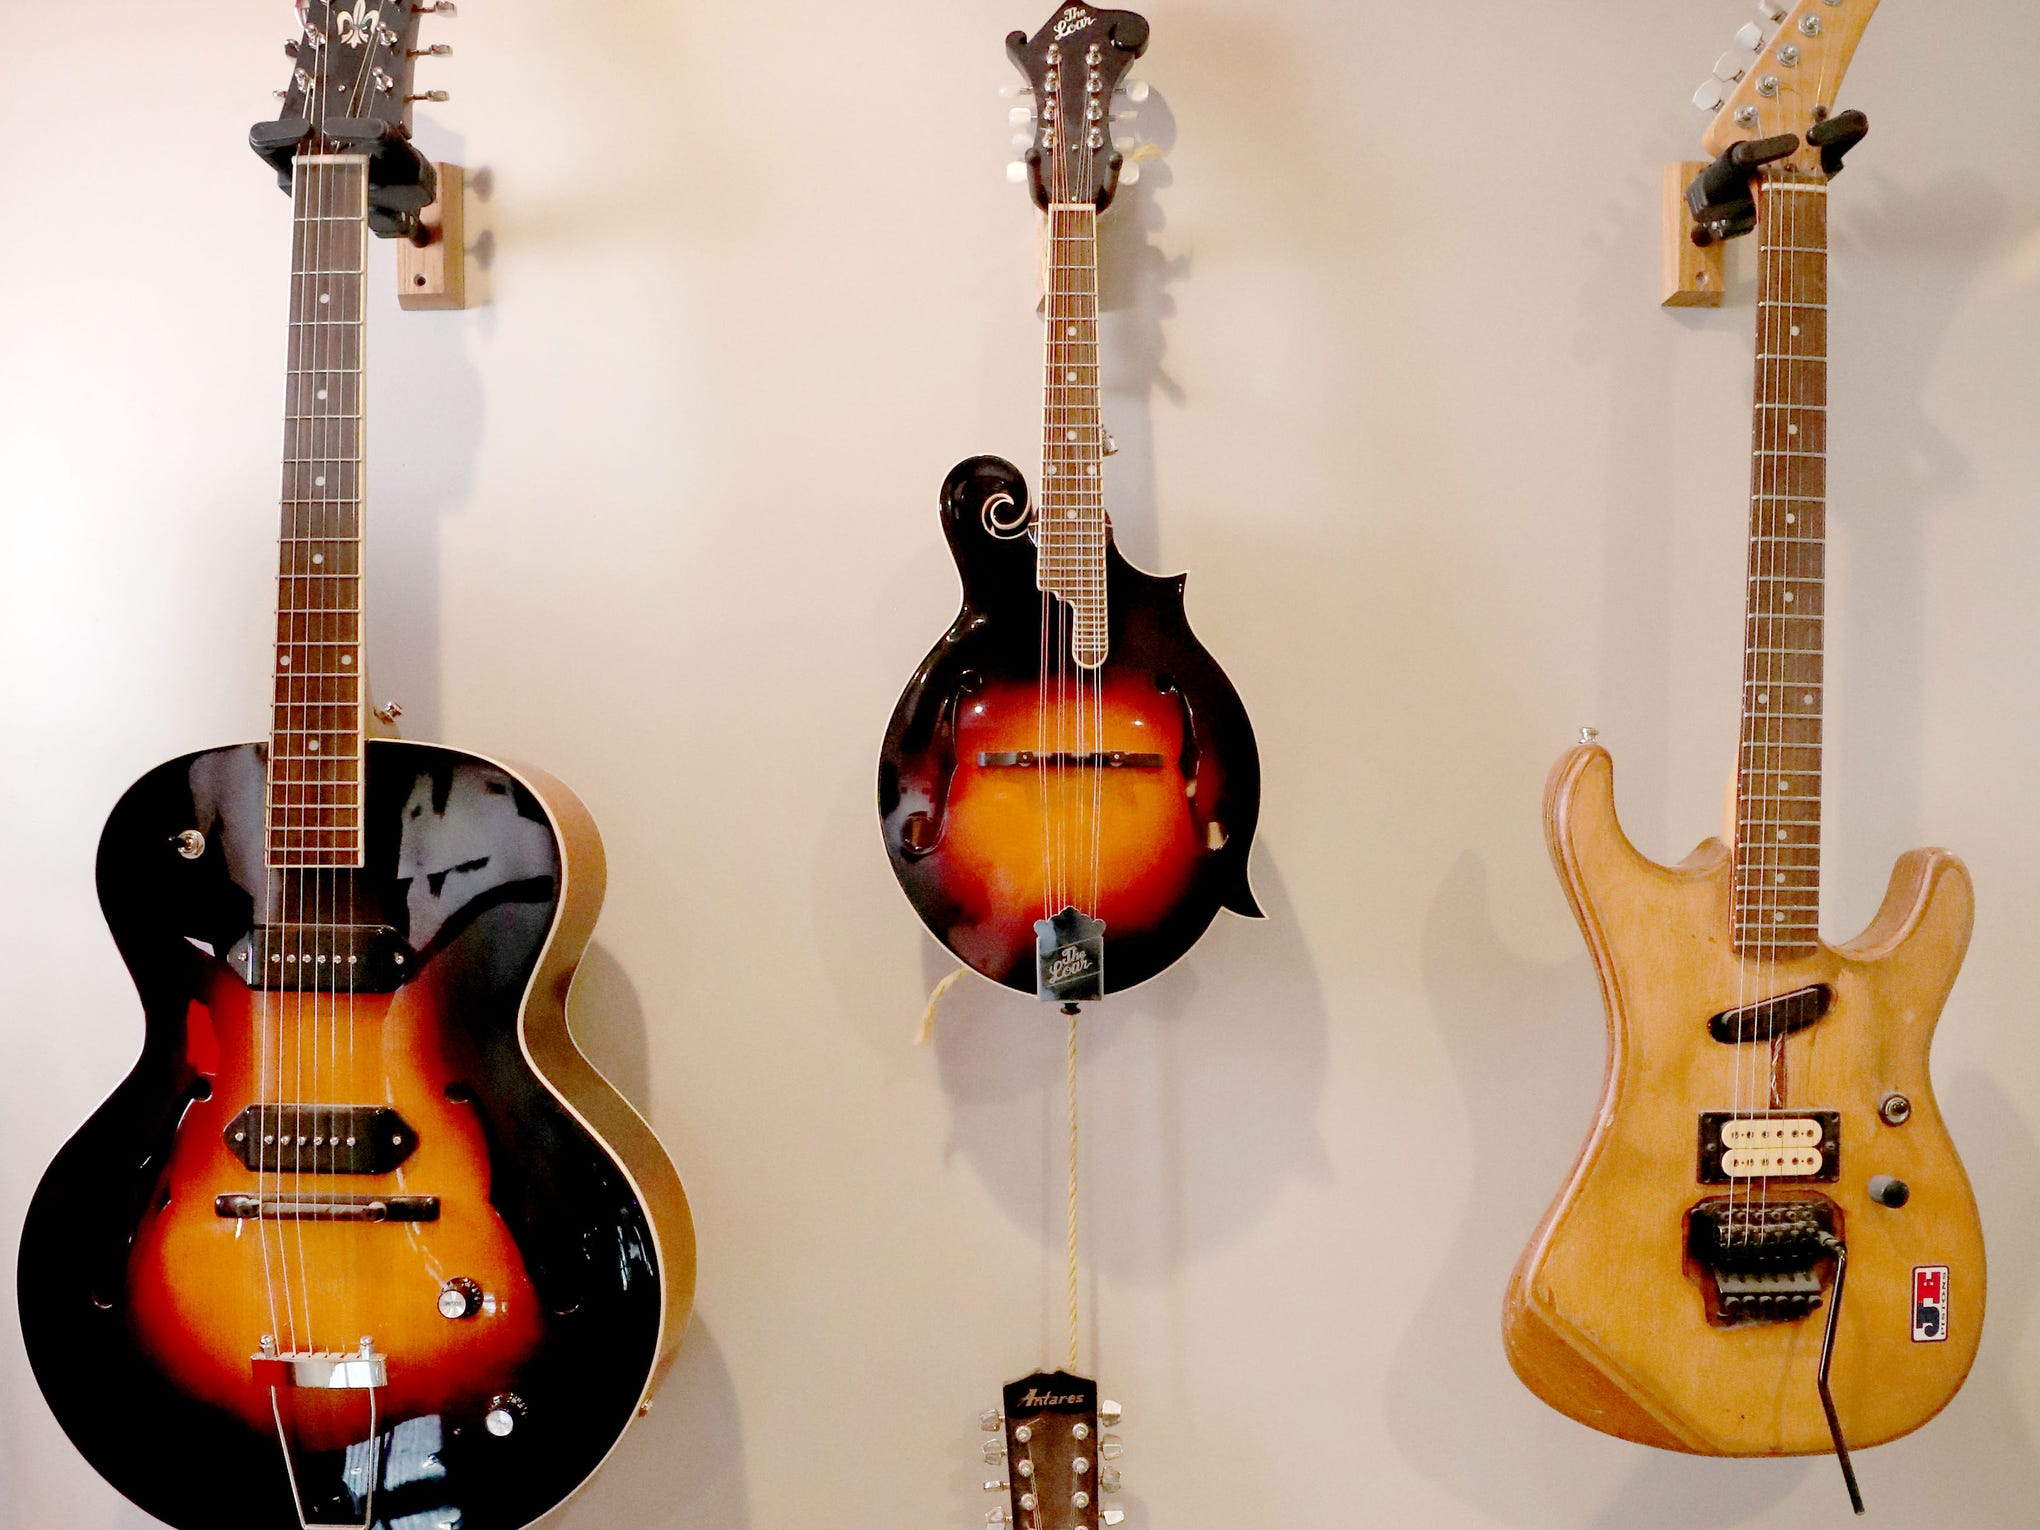 Andy Harper has a variety of instruments displayed in his talks studio Limitedwave Recordings.